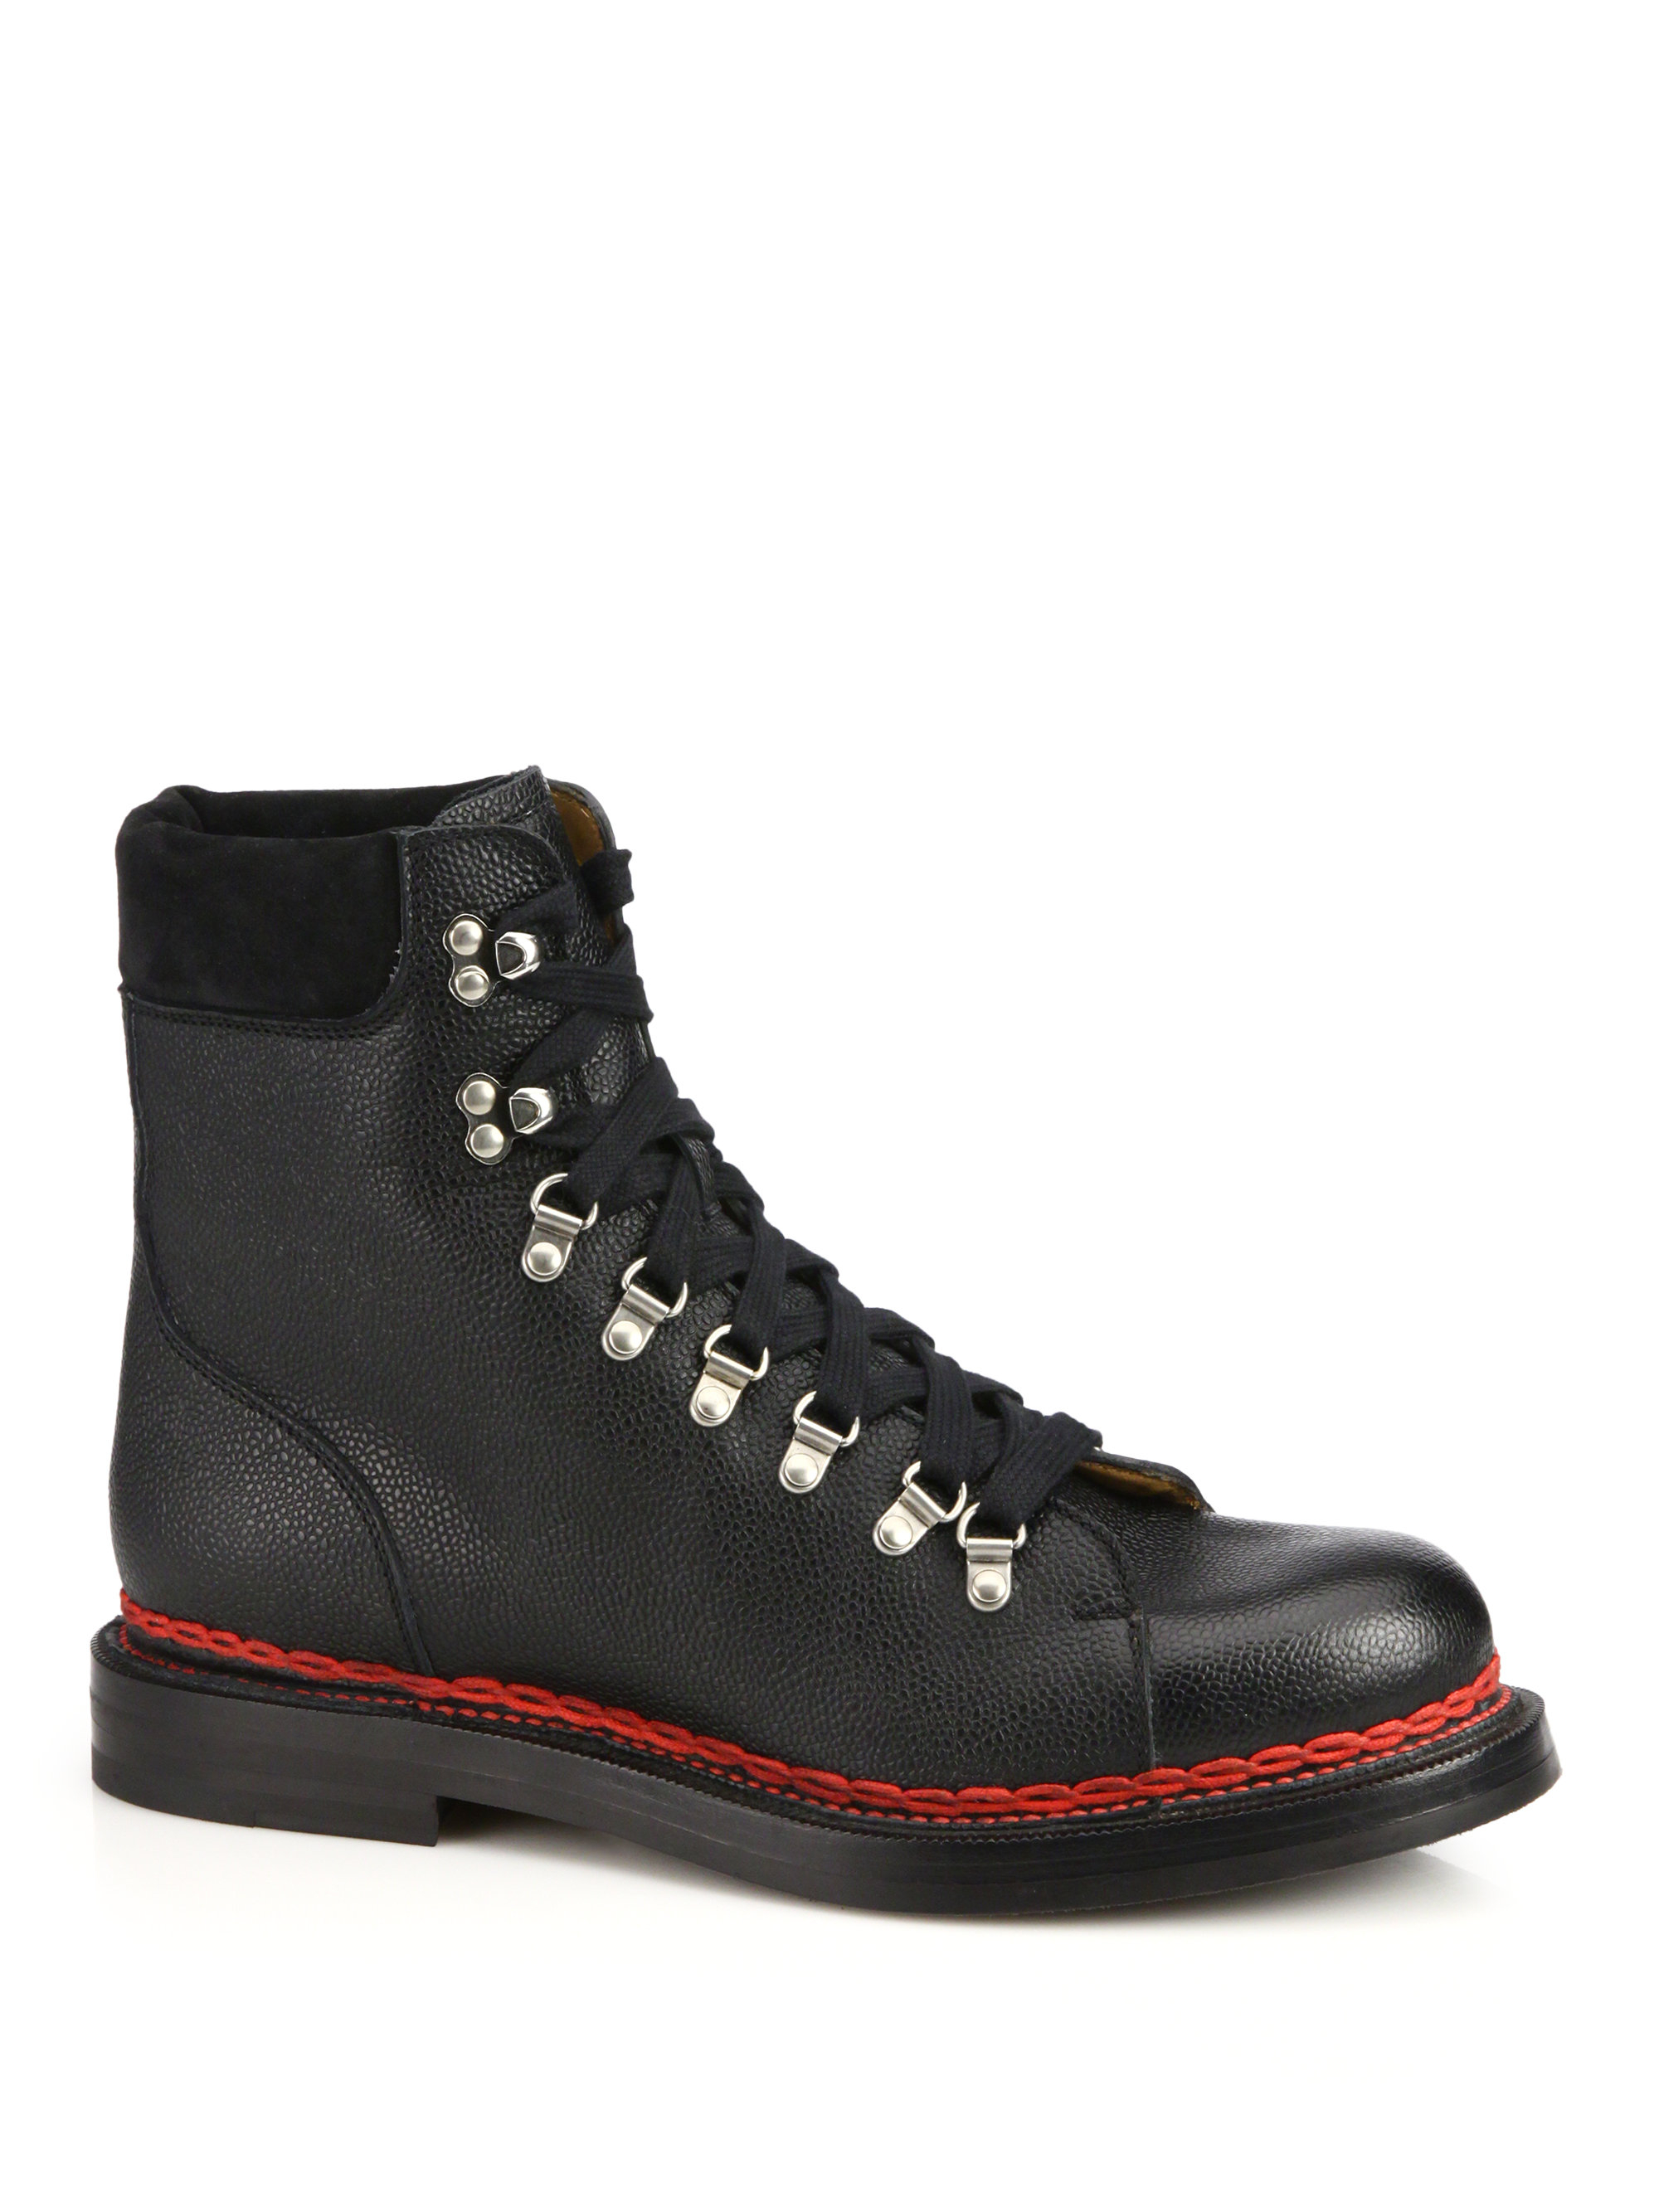 c03743077 Gucci Tracker Lace-Up Leather and Suede Boots in Black for Men - Lyst